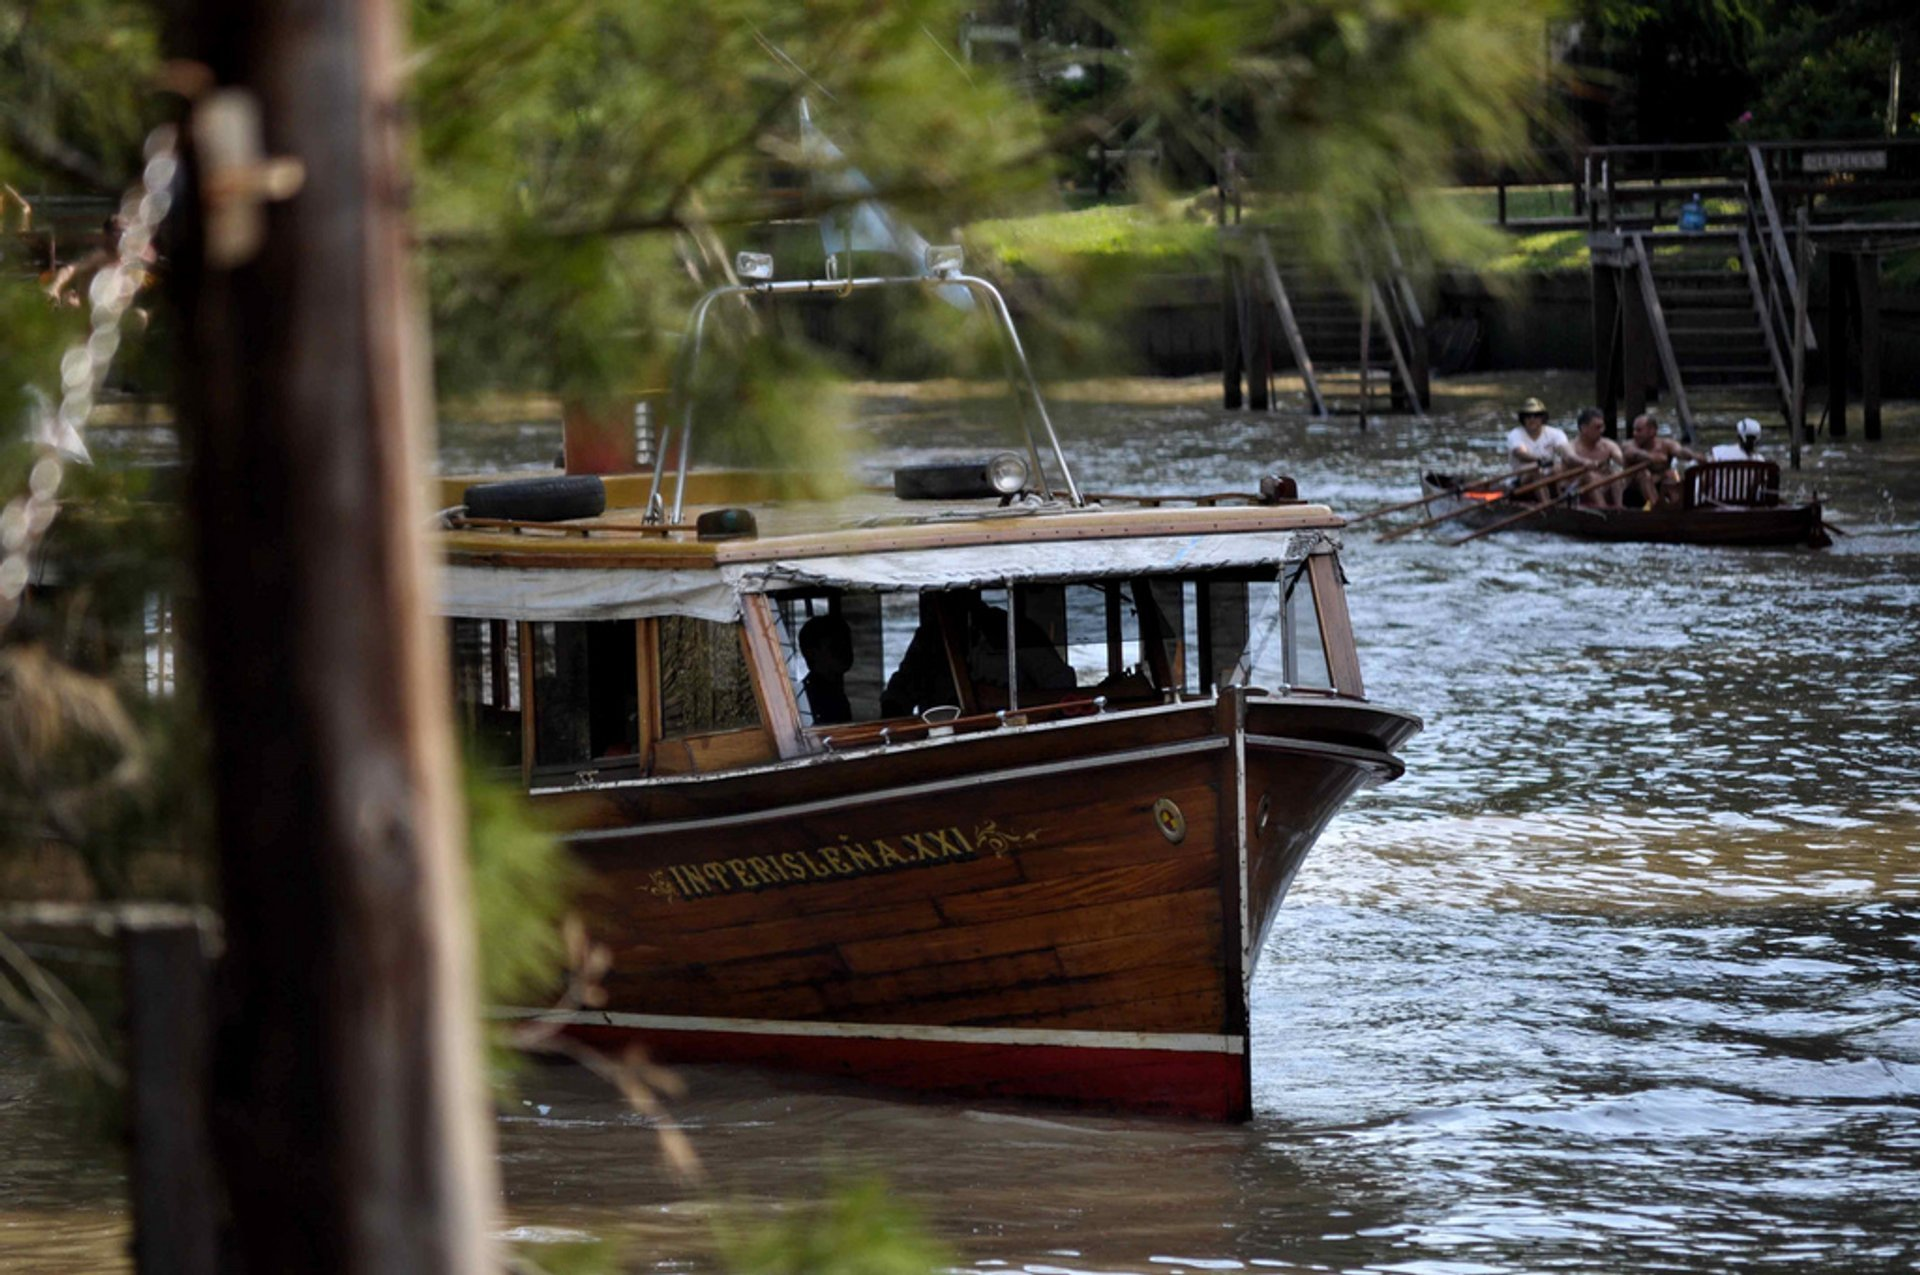 Best time to see Getaway to Tigre in Buenos Aires